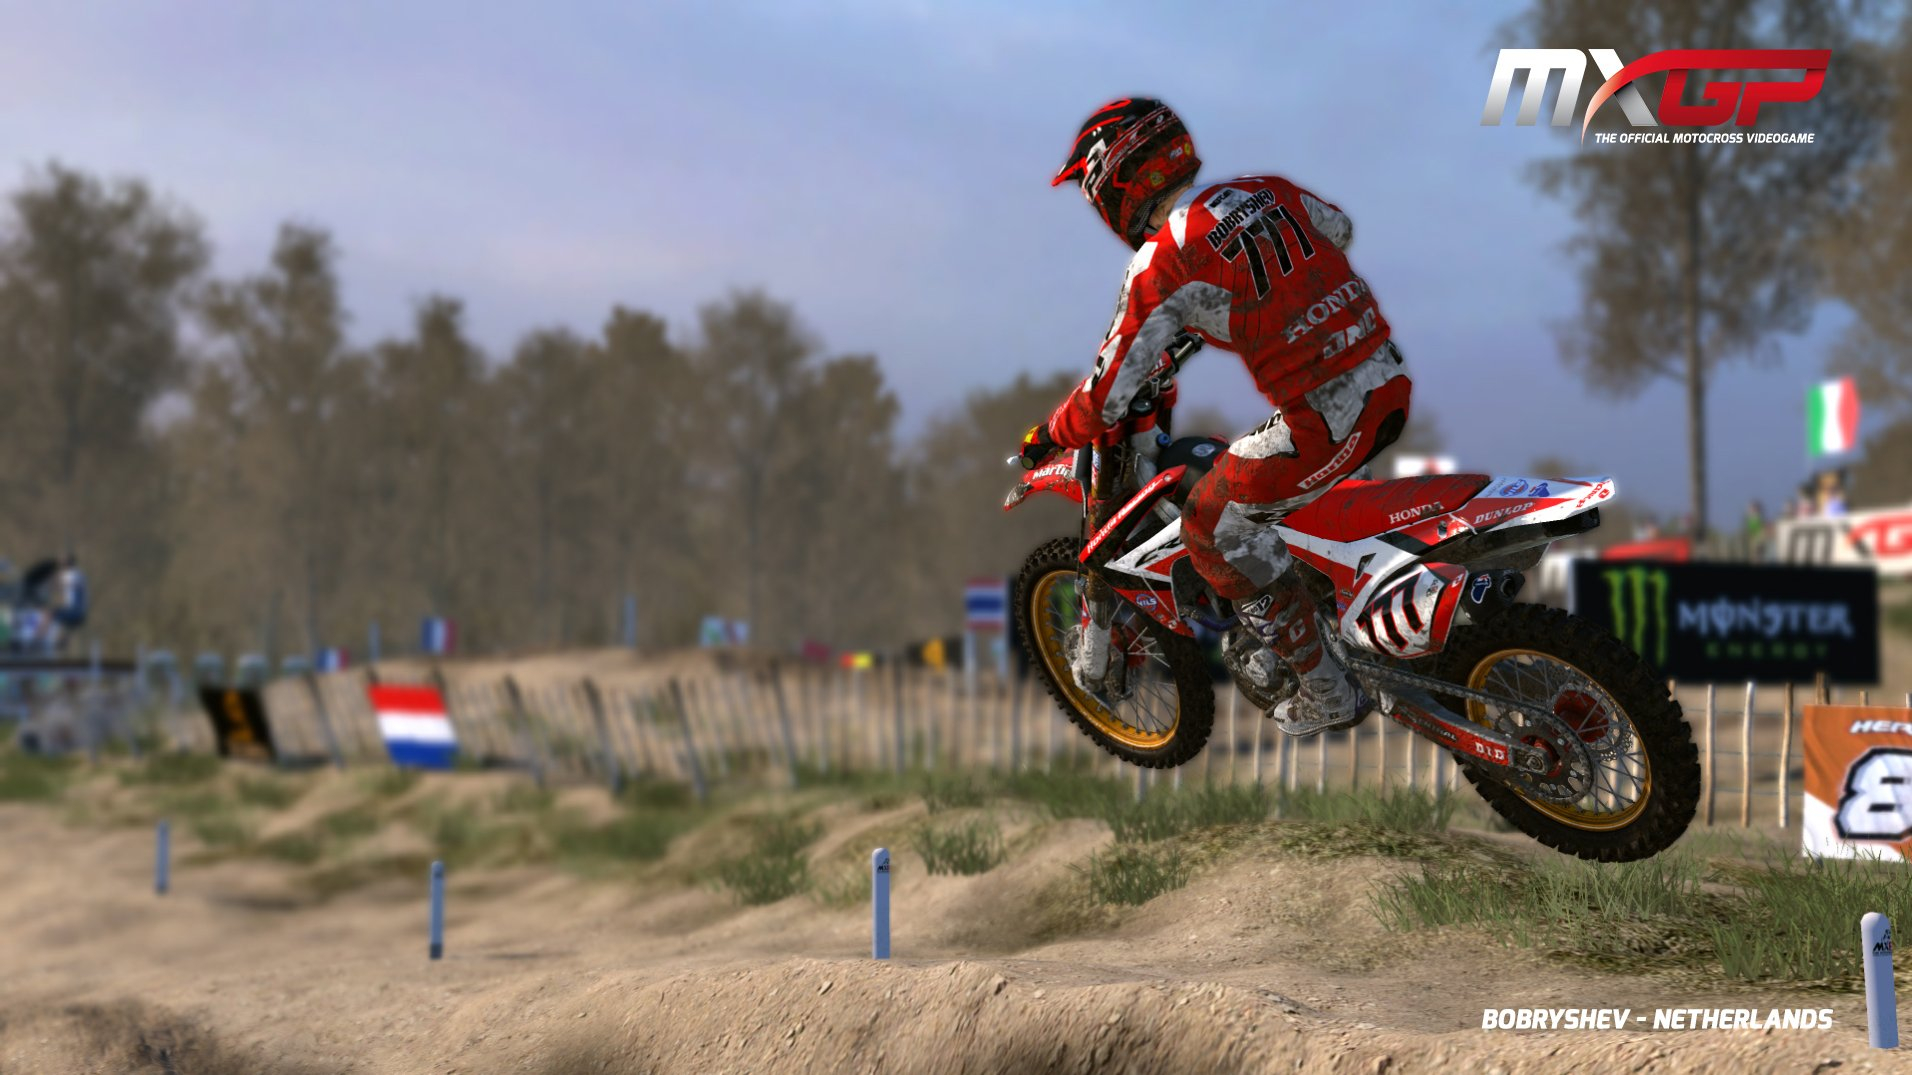 MXGP 14: The Official Motocross Videogame by Bandai (Image #8)